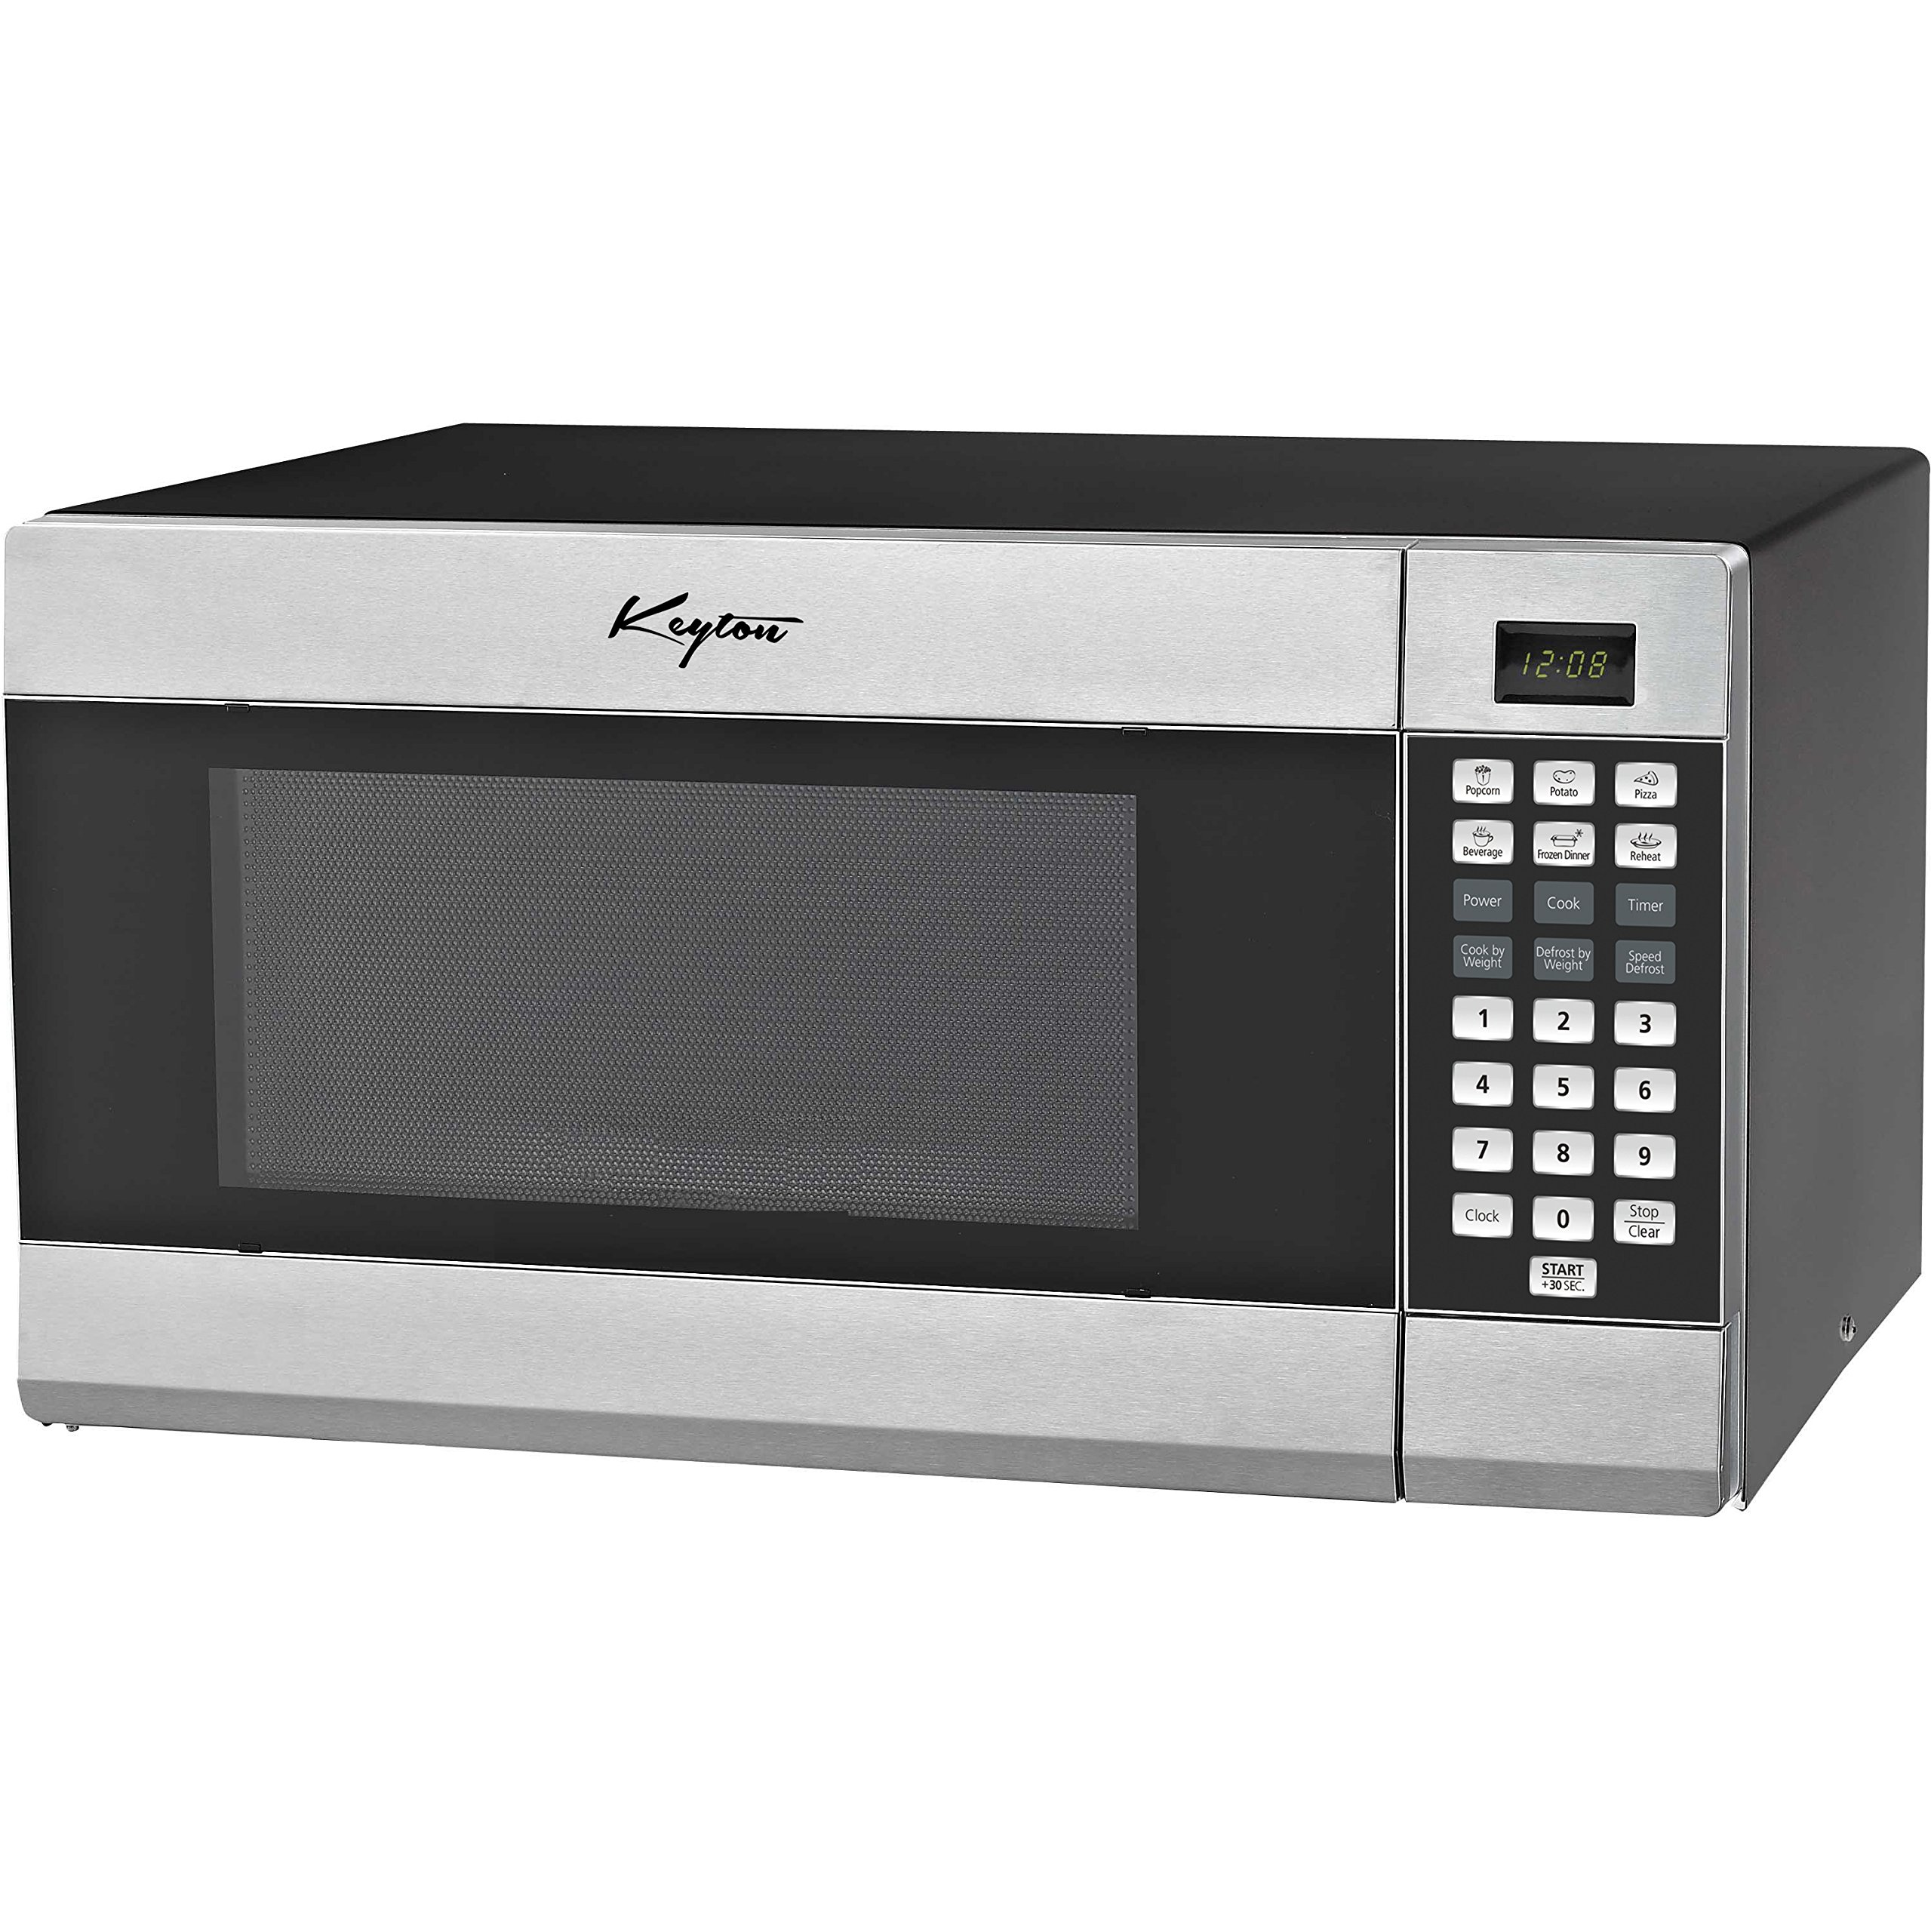 Stainless Steel Microwave Oven - 6 Instant Cooking Settings & 10 Power Levels With A Digital Display, Built In Clock & Child Safety Lock - 1.1 Cubic Feet - By Keyton